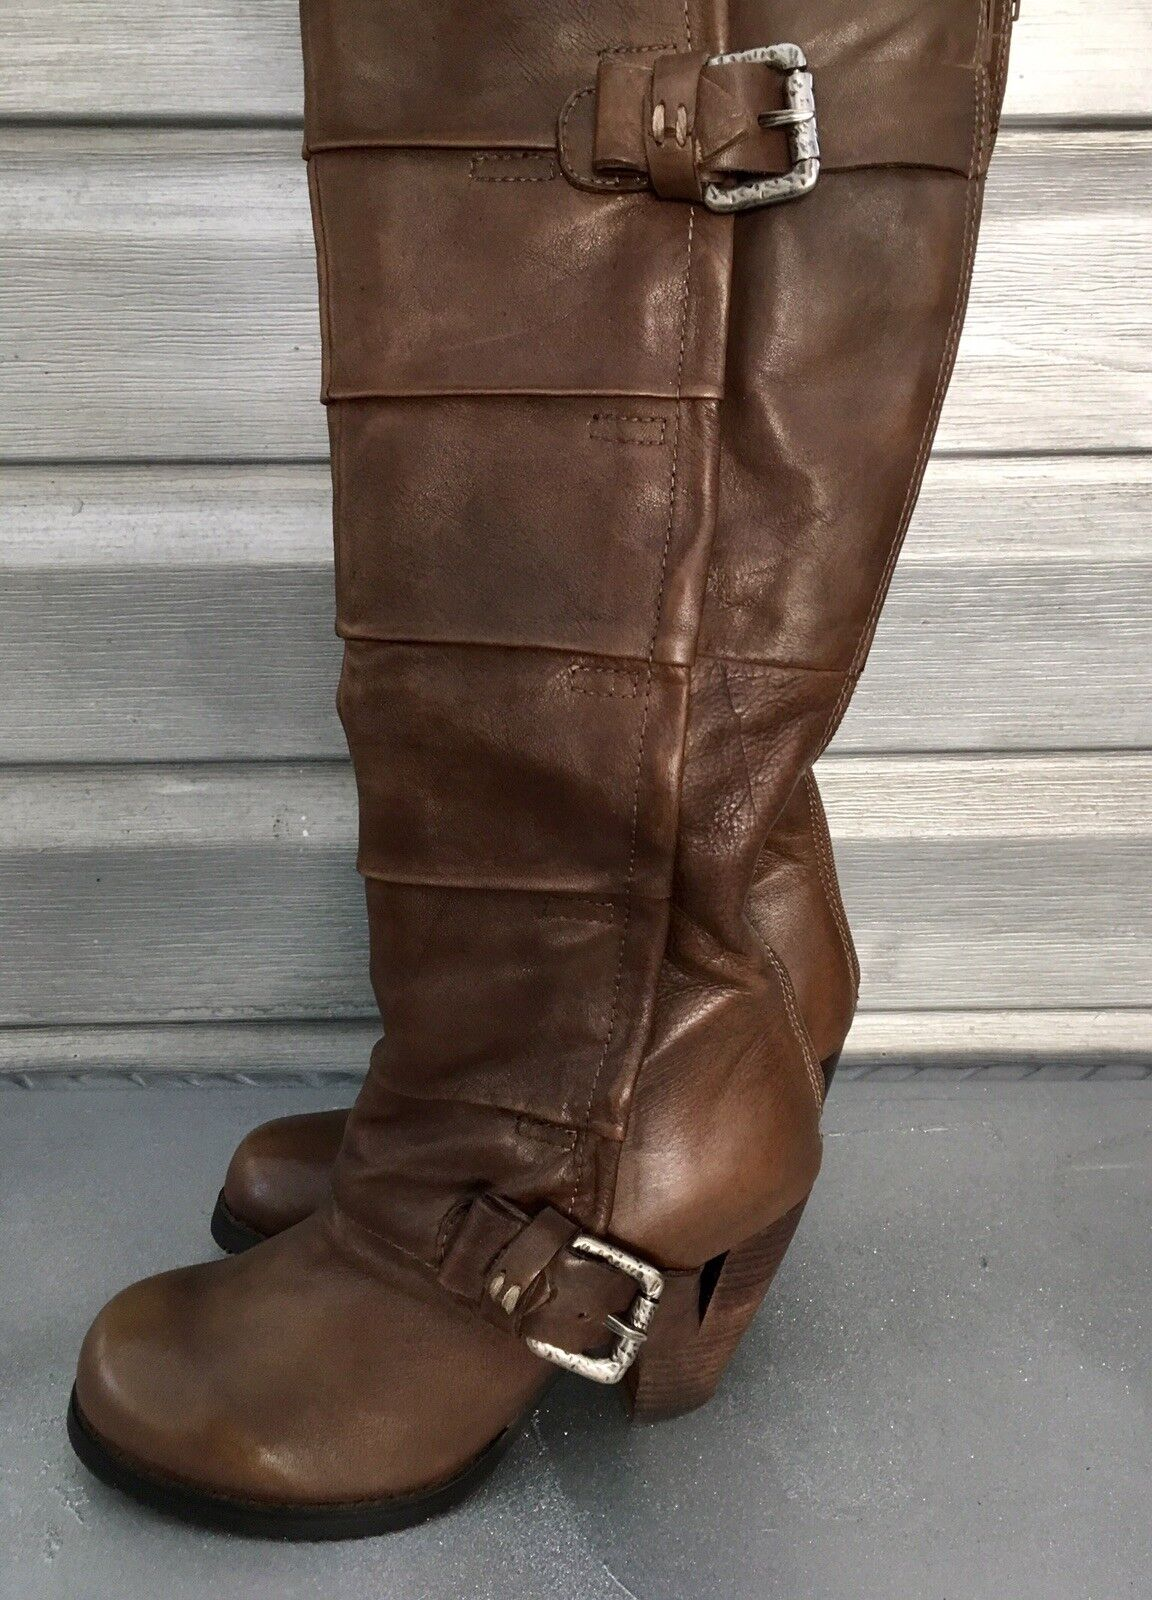 MIZ MOOZ Soren Brown Leather Buckle Harness Boots